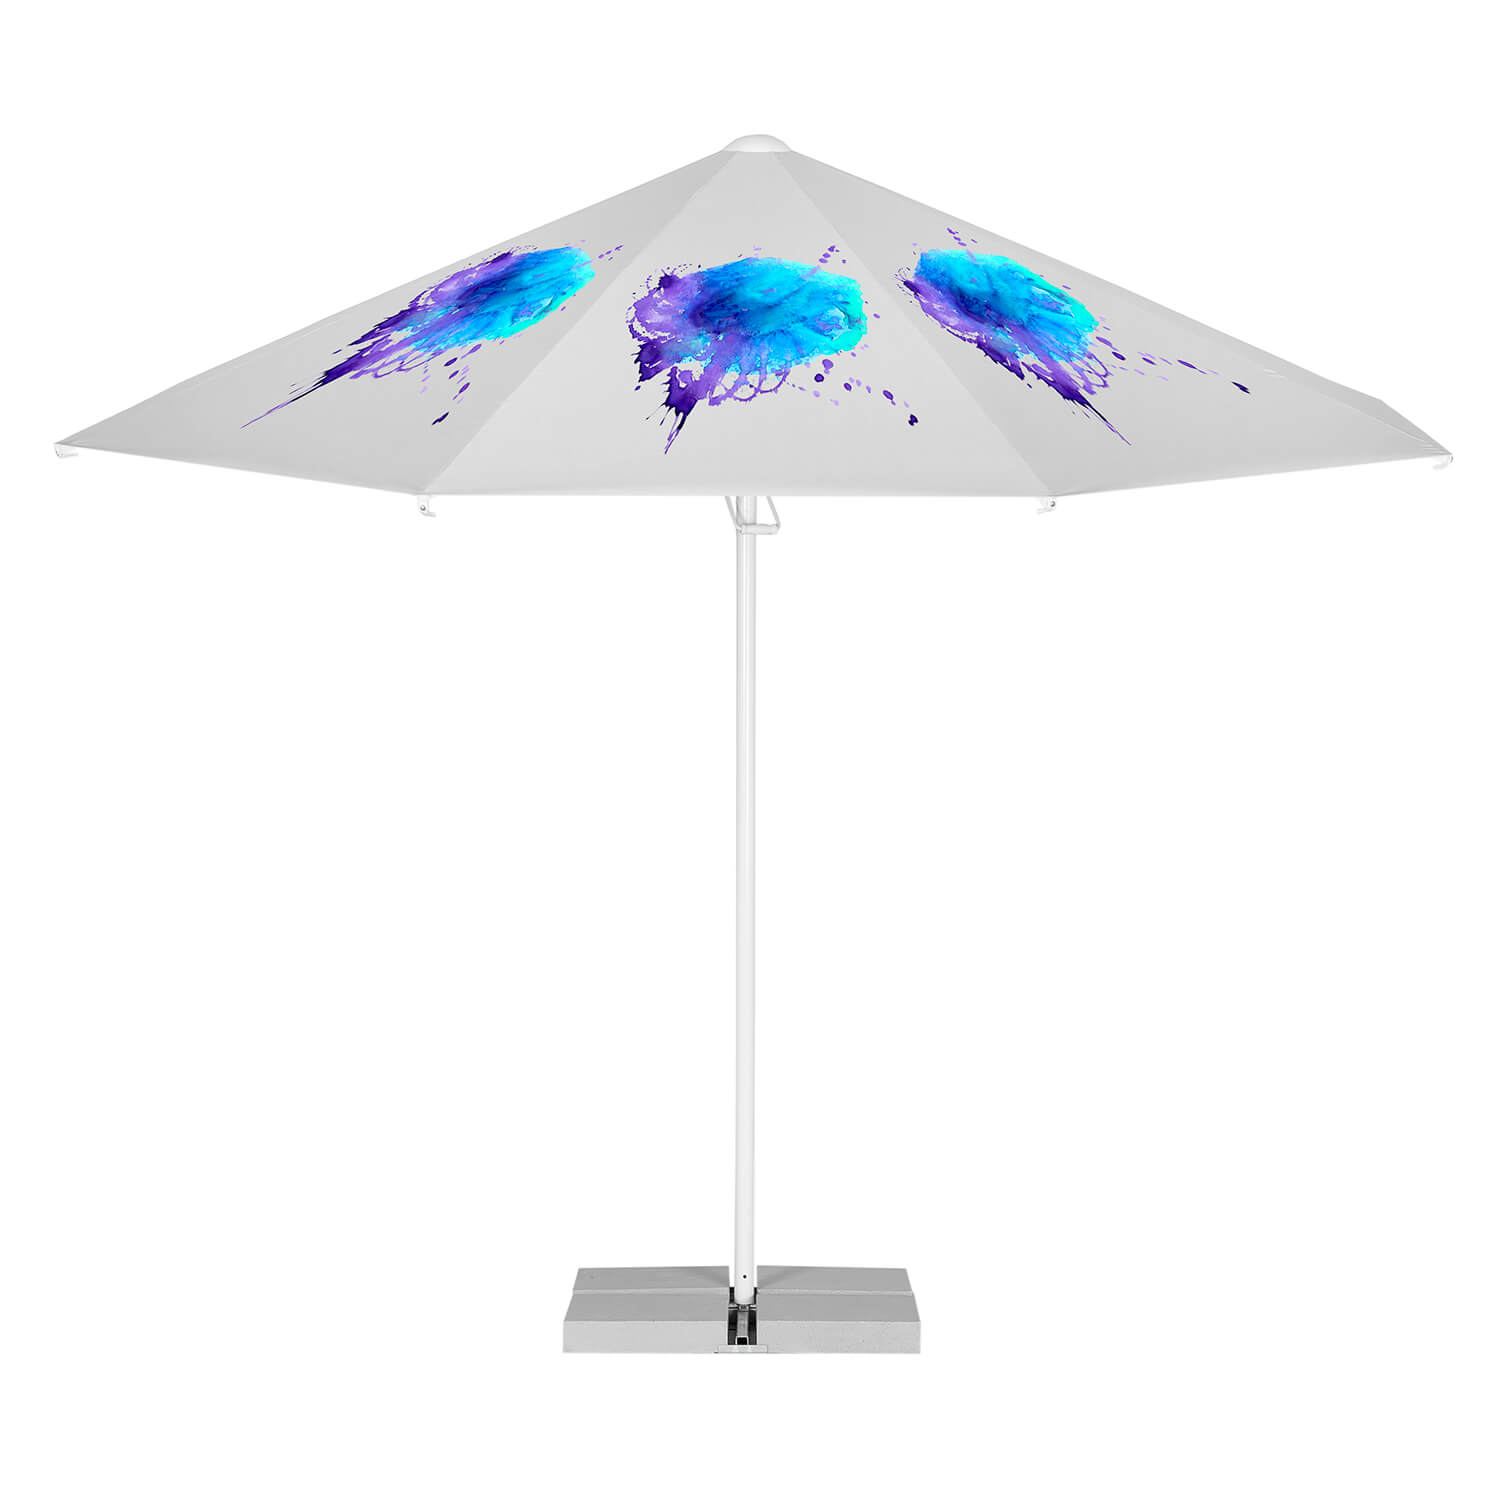 3. Telescopic Parasols